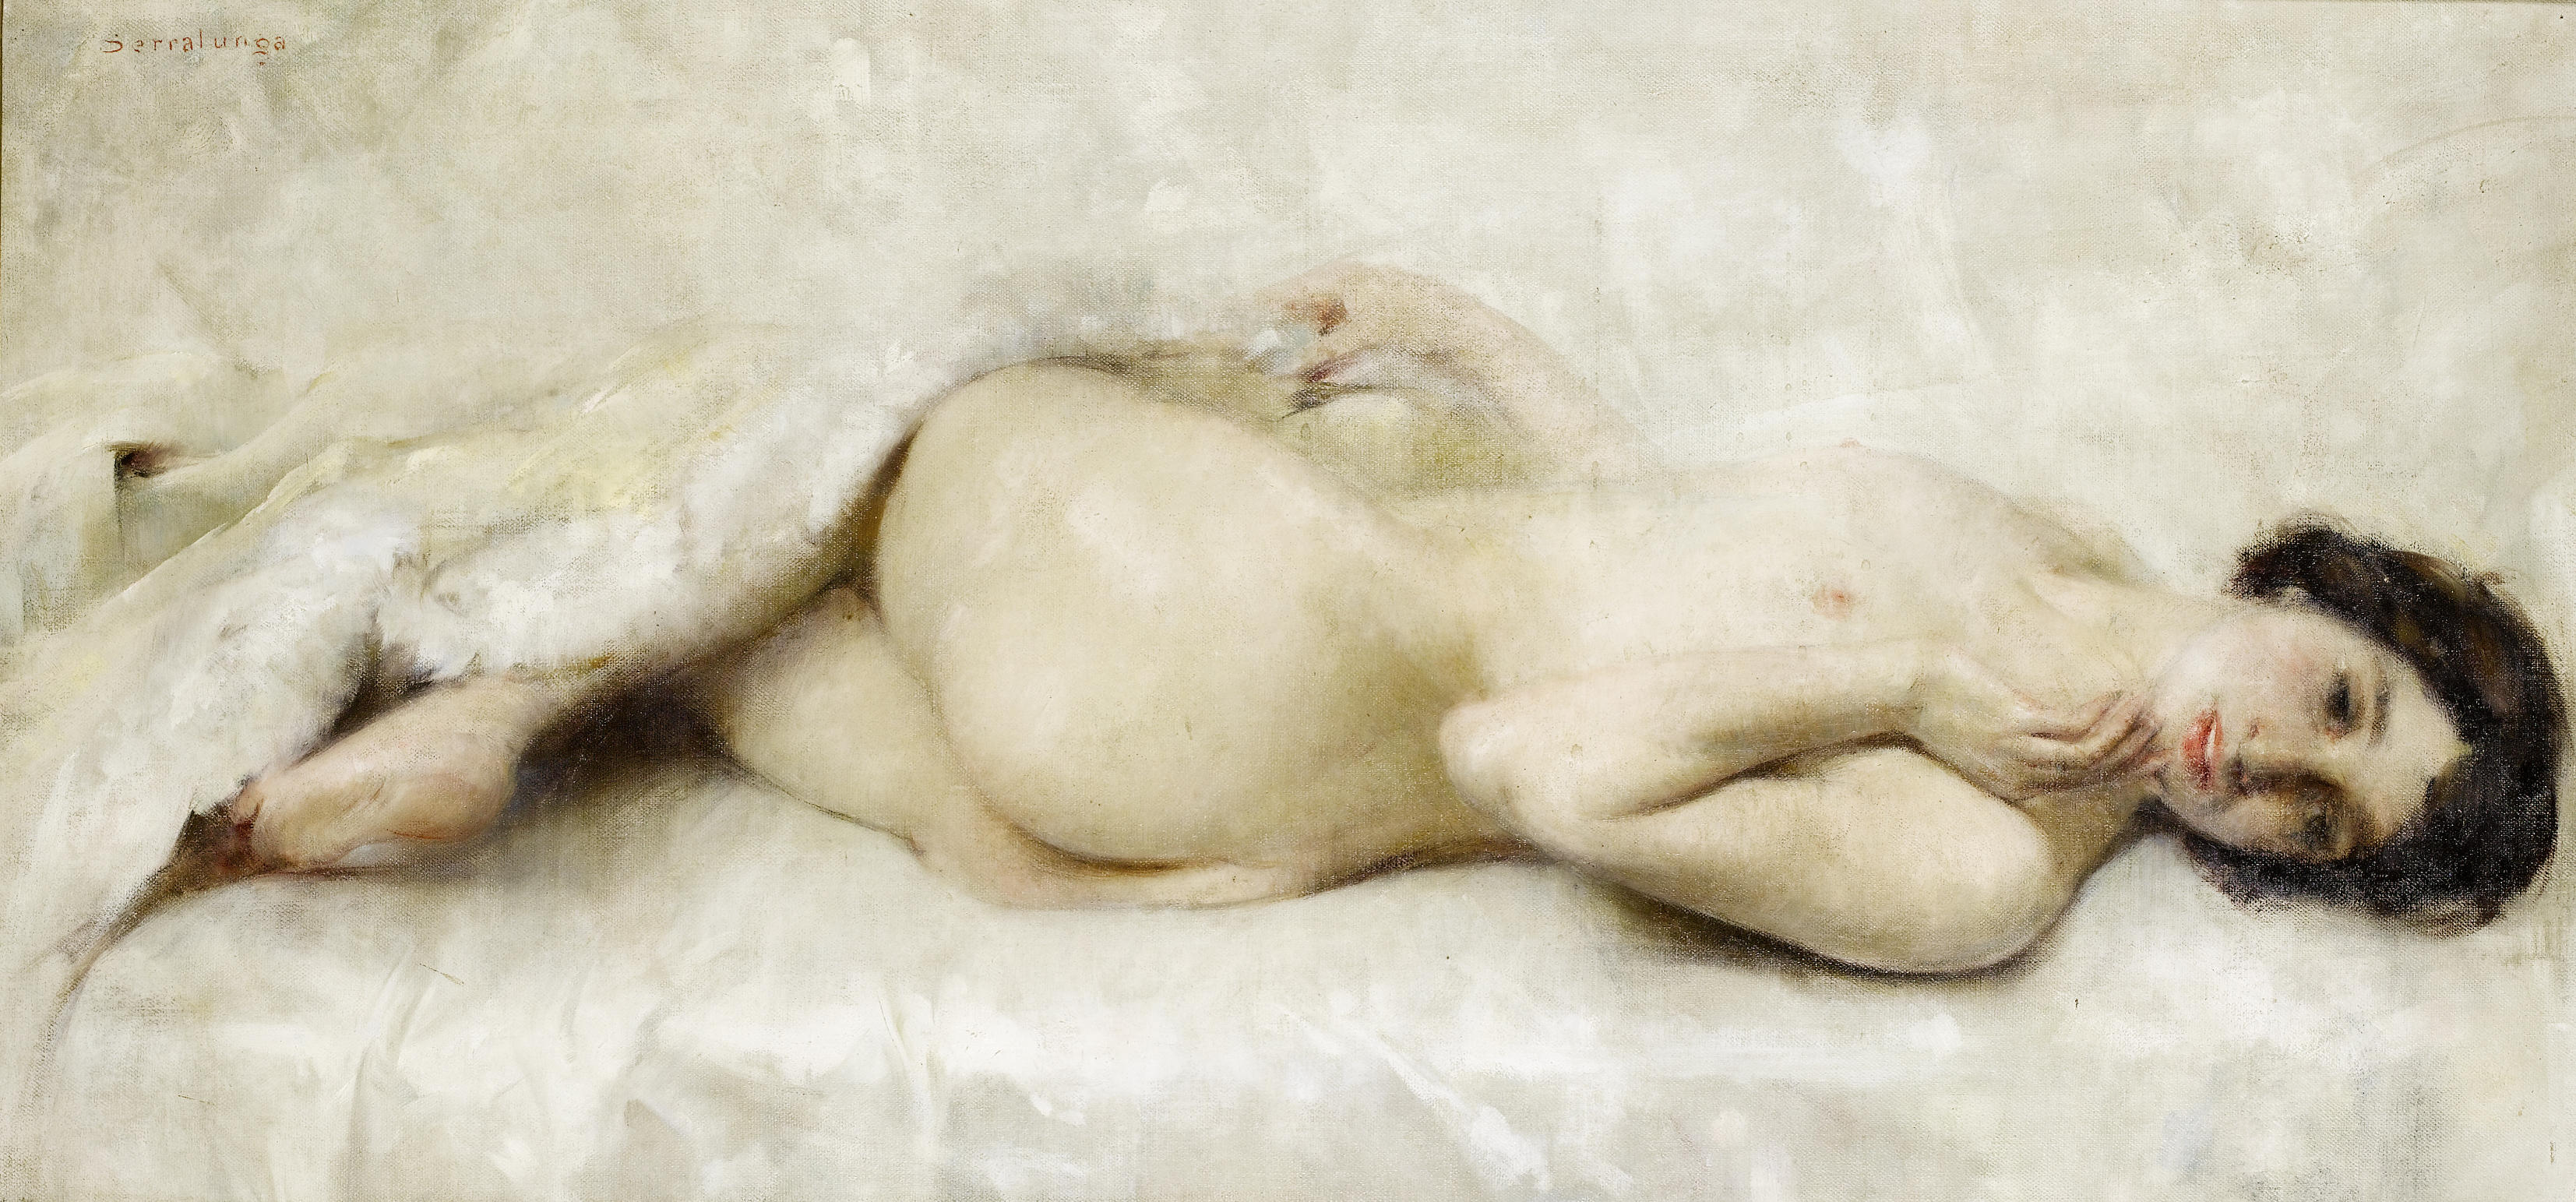 Reclining nude art photography